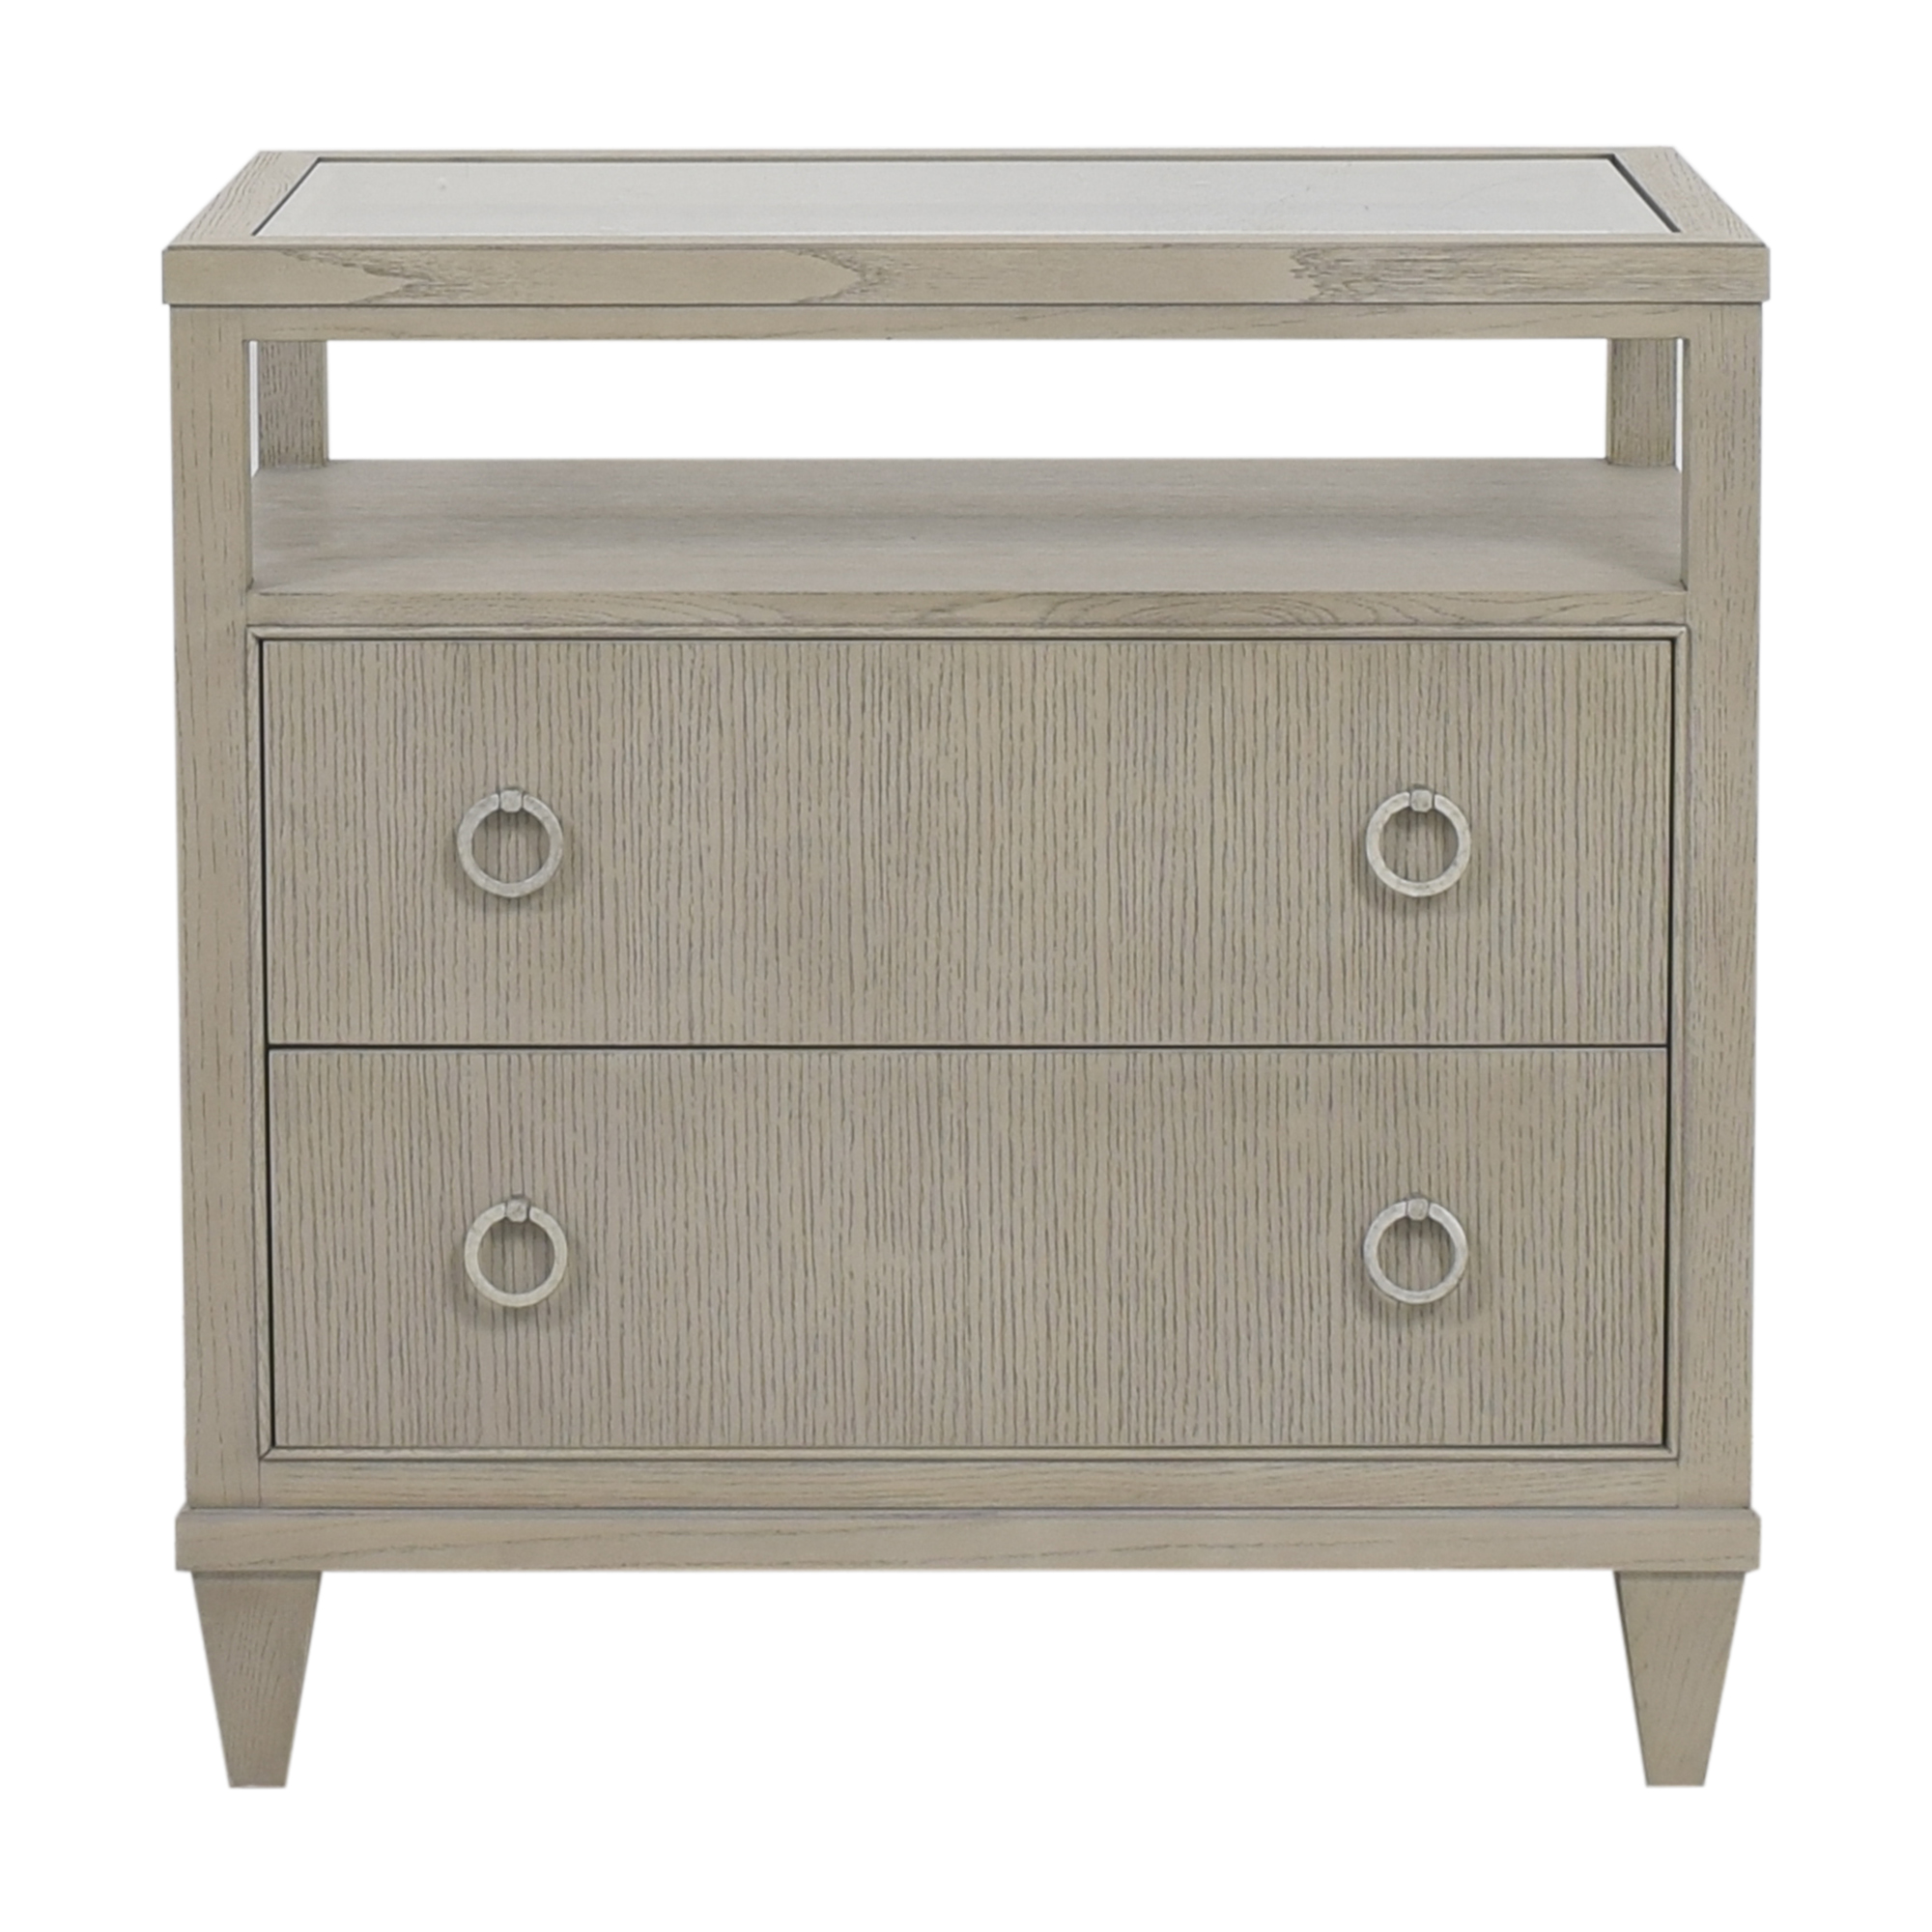 Ethan Allen Ethan Allen Heston Nightstand on sale